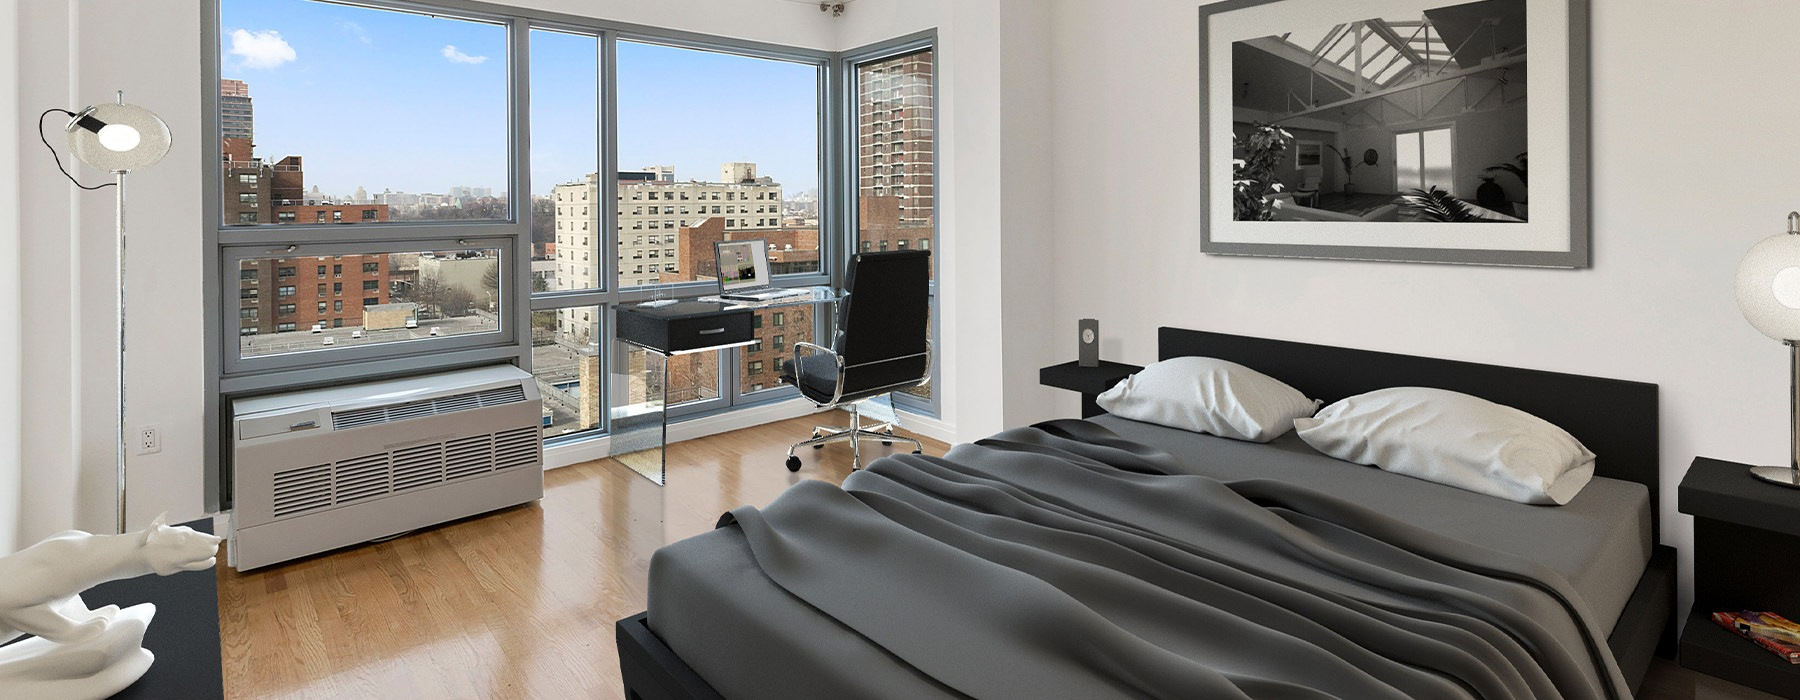 Bedroom with floor-to-ceiling windows and a view of the City